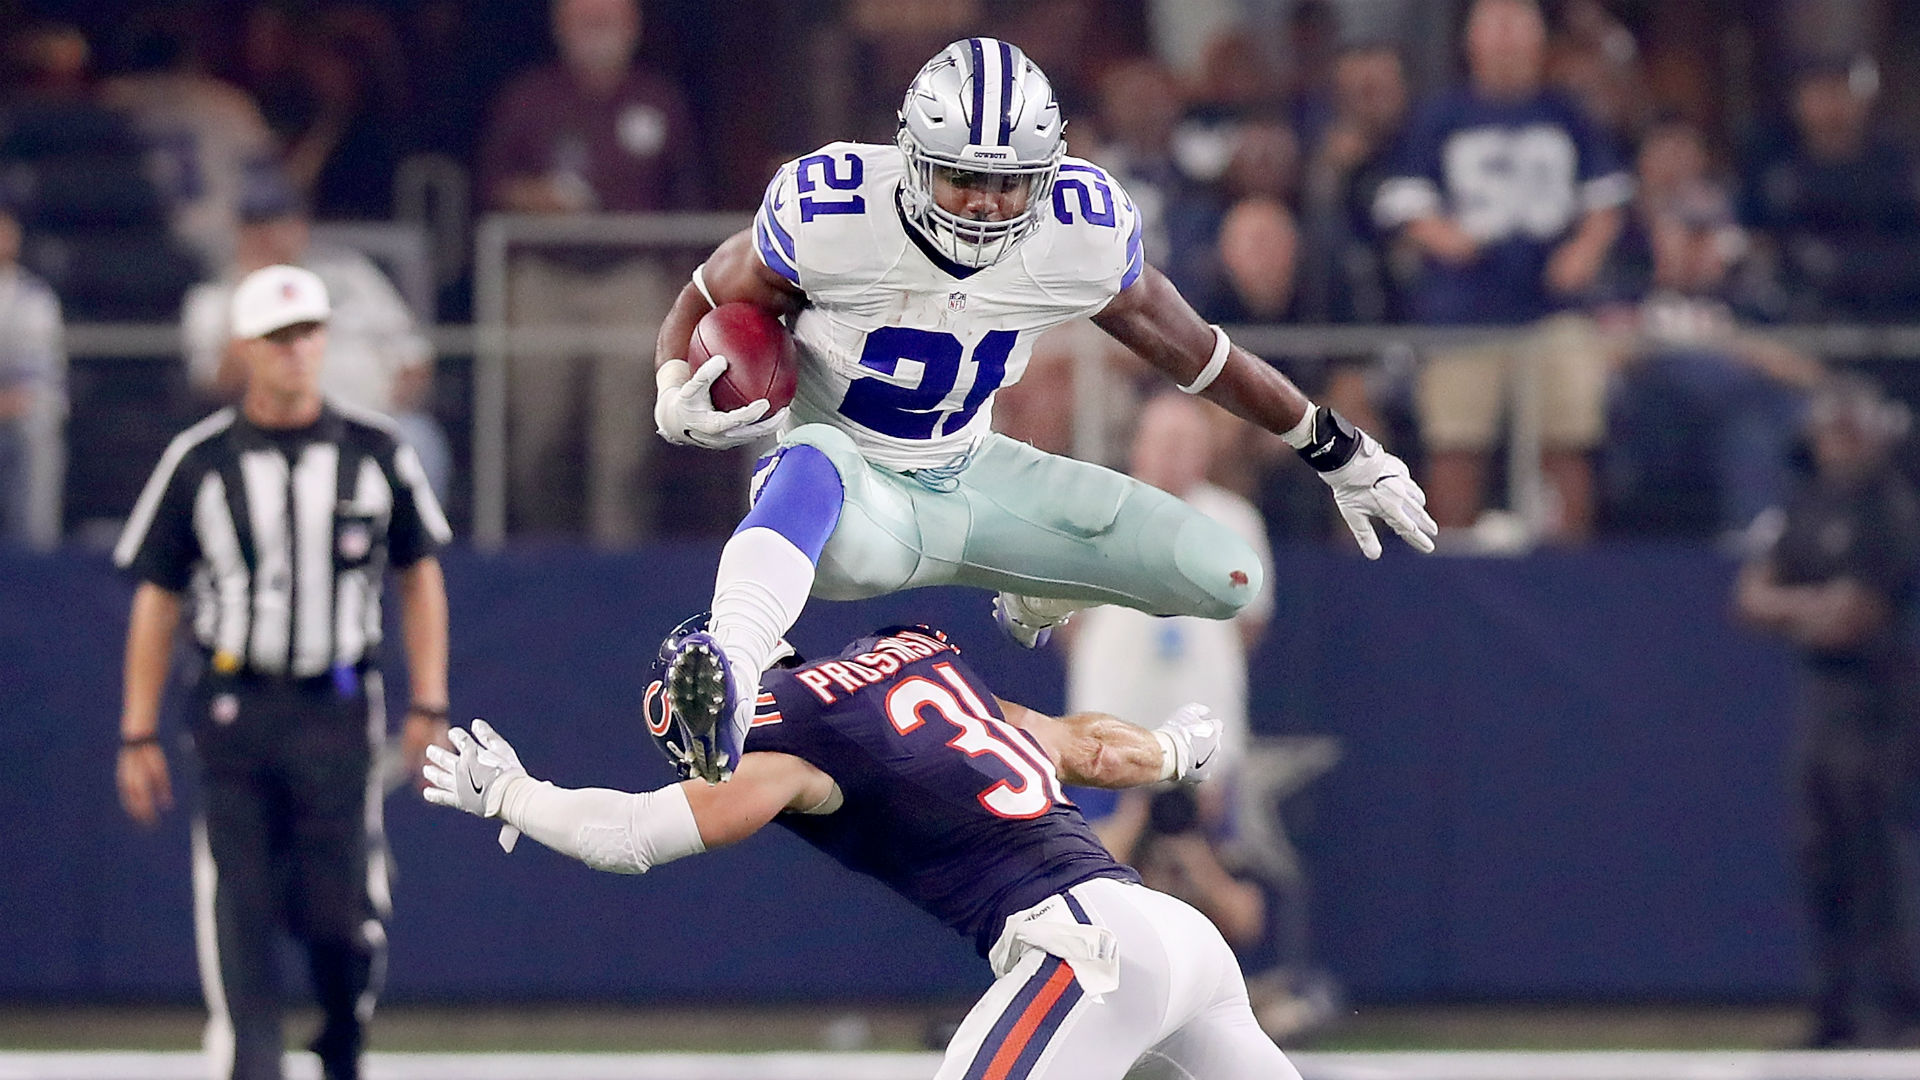 ezekiel-elliott-092516-getty-ftr-usjpg_2nj0hp8bw45x1wvz14logdxro